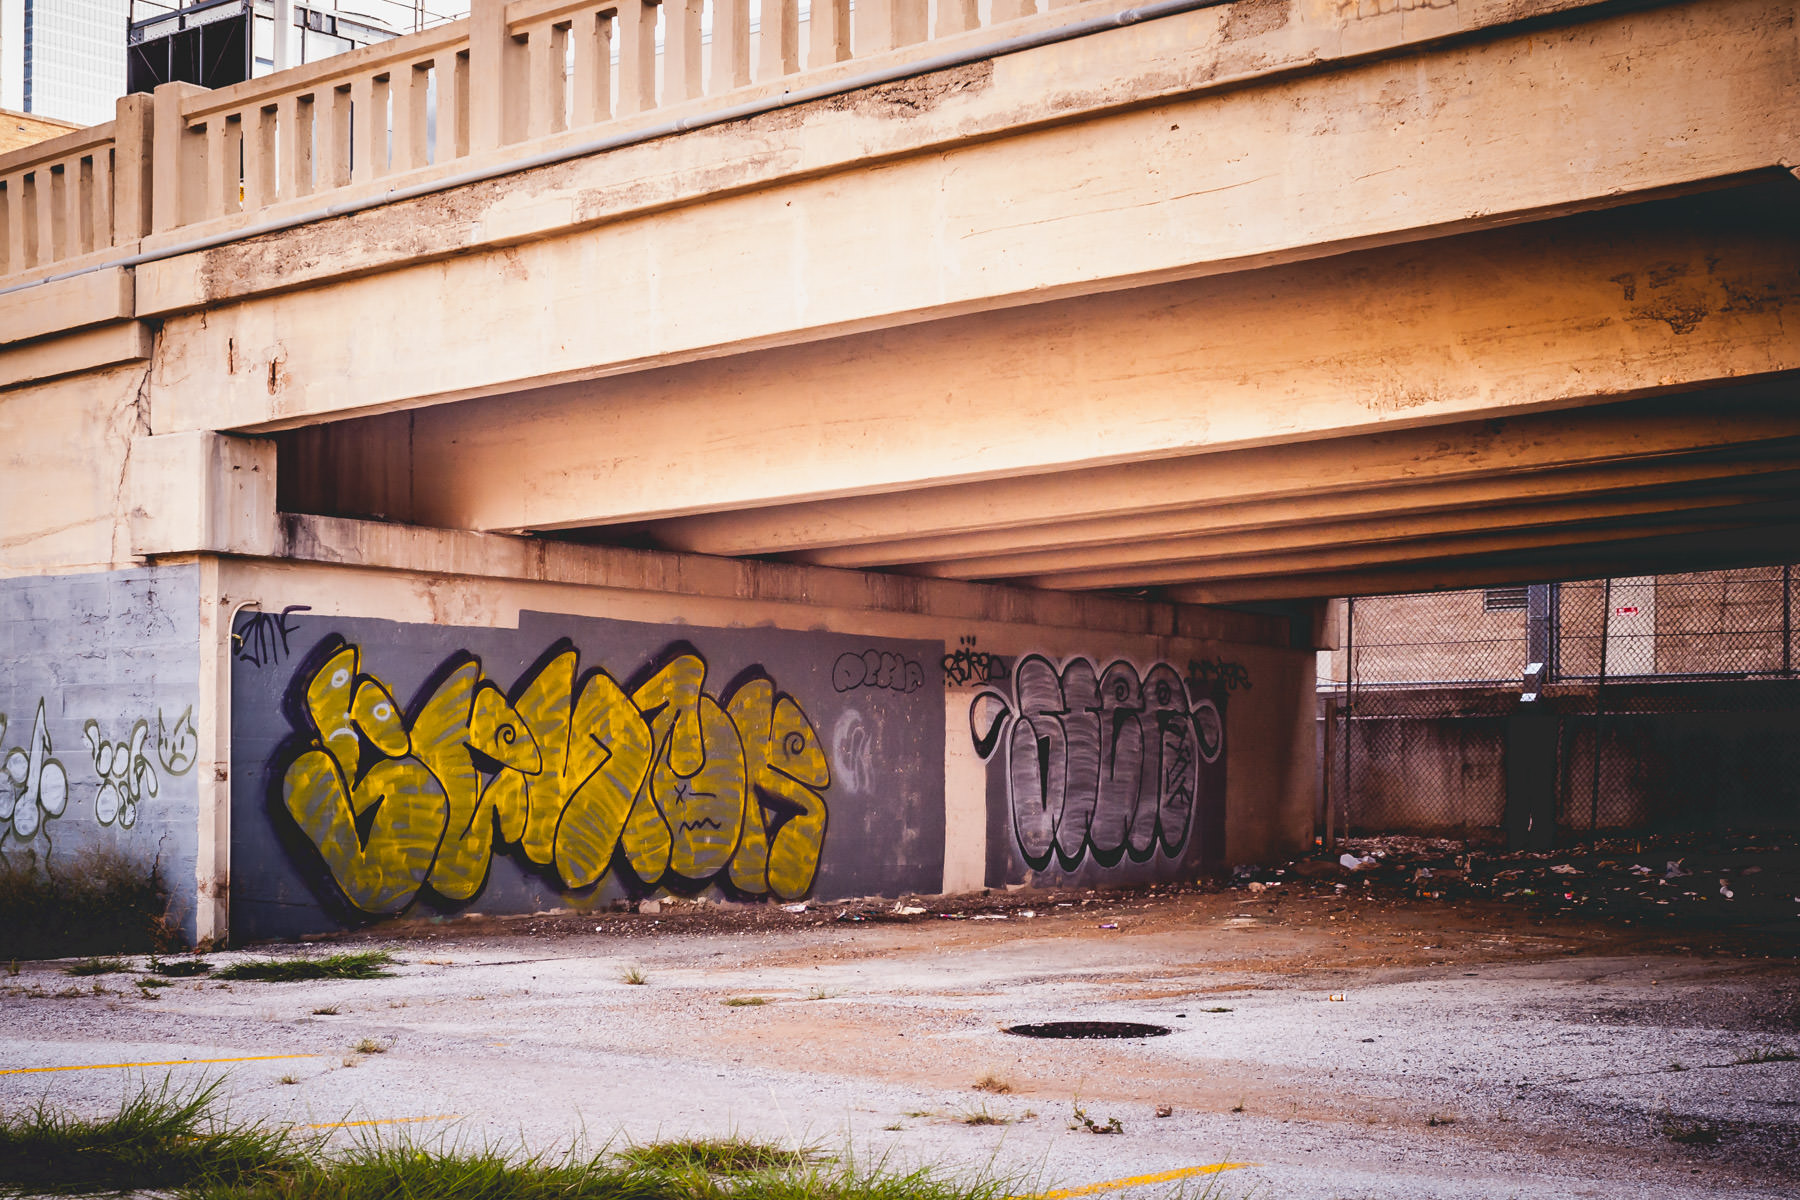 Graffiti and decay in Dallas' Reunion area.